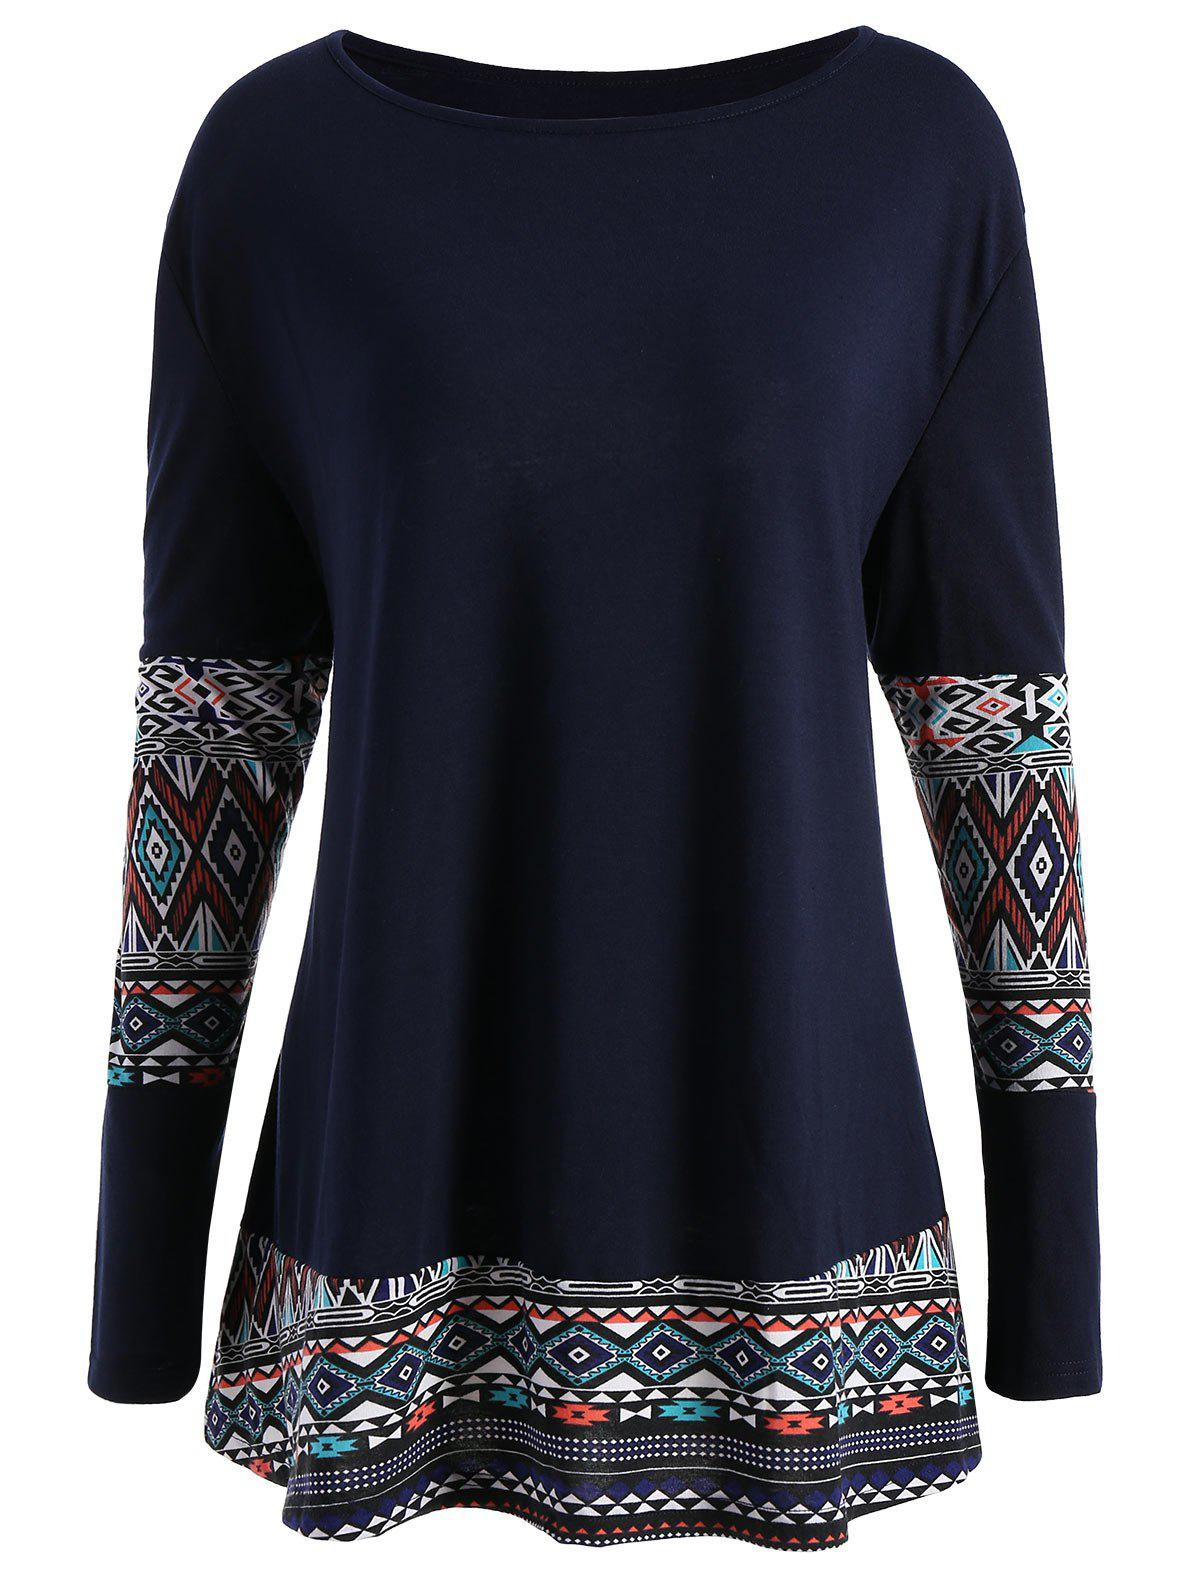 Geometric Print Plus Size Tunic TopWOMEN<br><br>Size: 2XL; Color: DEEP BLUE; Material: Polyester,Spandex; Shirt Length: Long; Sleeve Length: Full; Collar: Round Neck; Style: Casual; Season: Fall,Spring; Pattern Type: Print; Weight: 0.4800kg; Package Contents: 1 x Top;